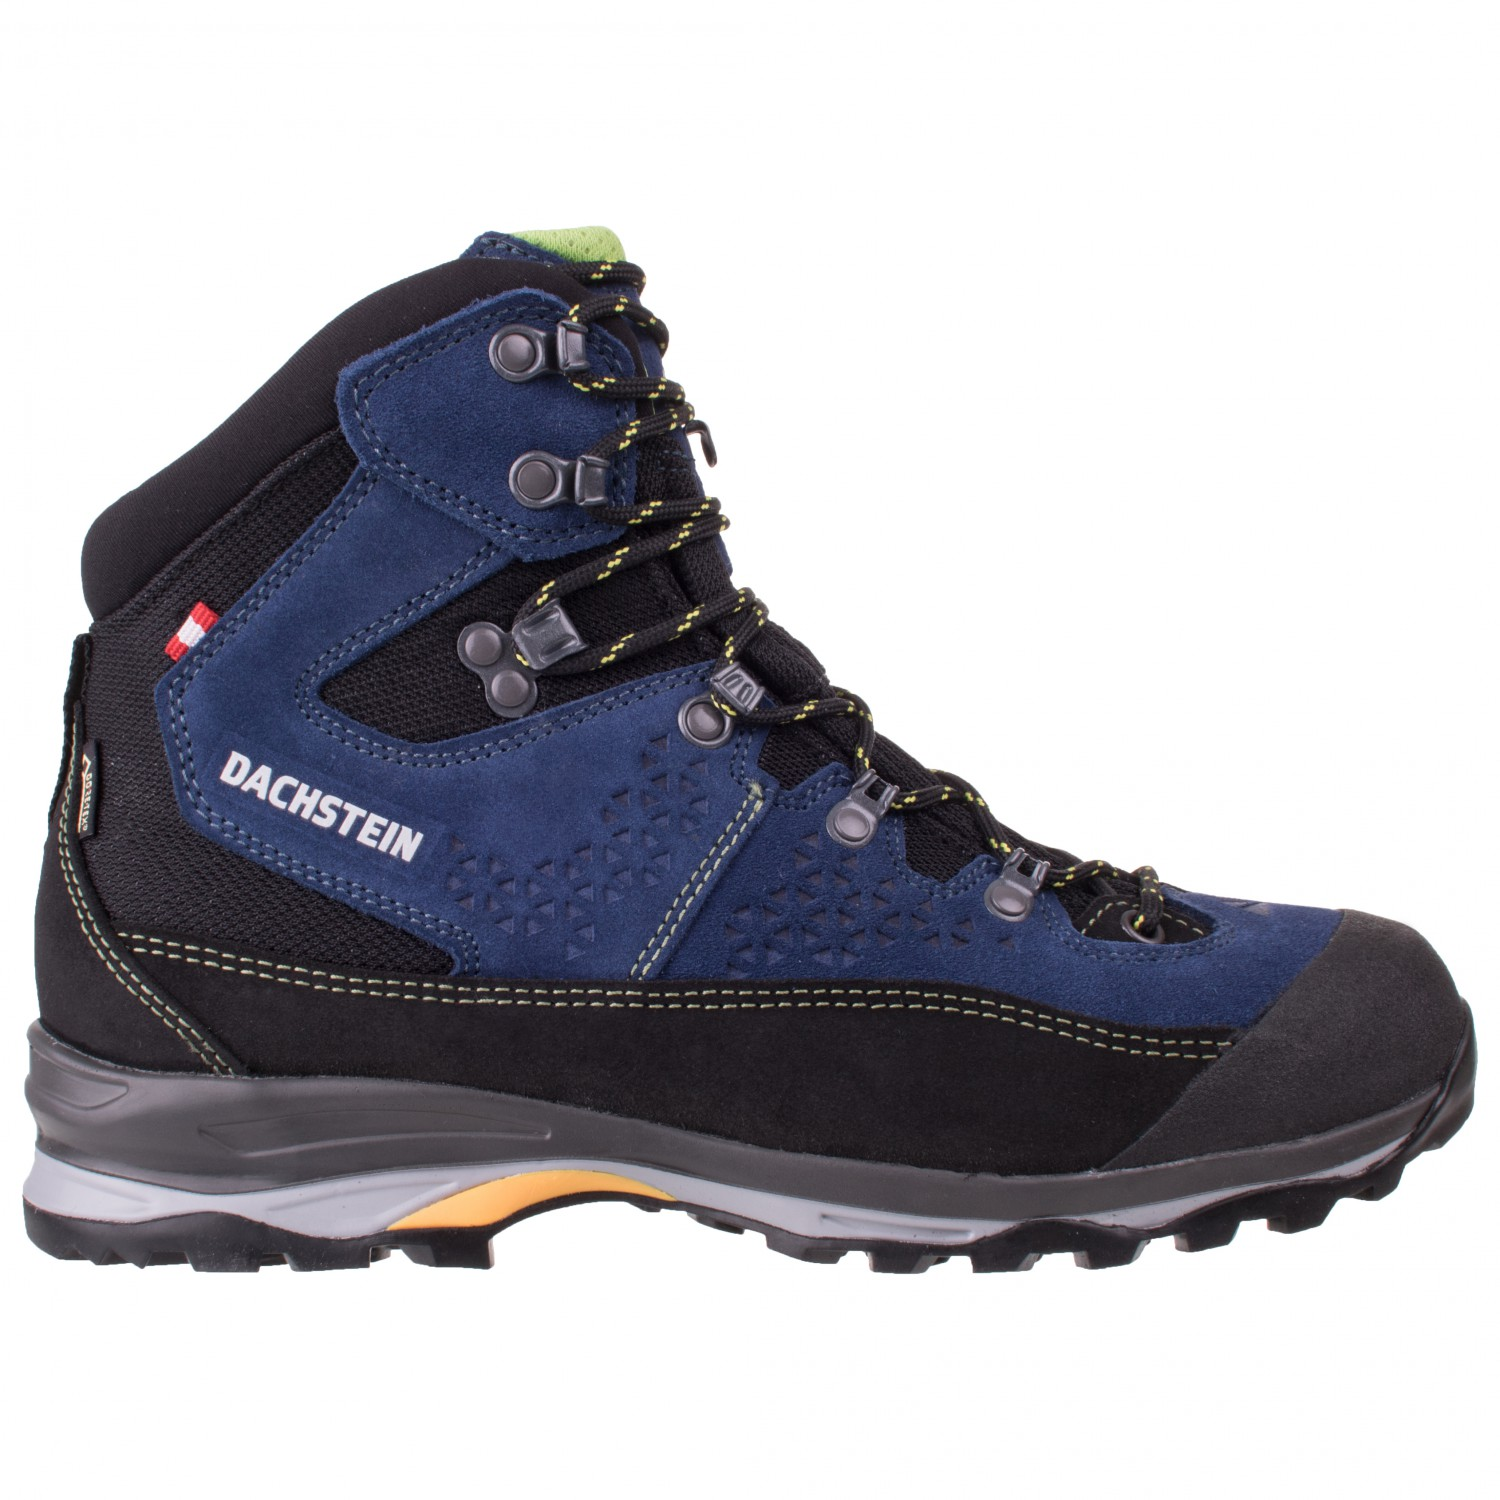 78a633e5d9e3 Dachstein Sonnblick GTX - Walking Boots Men's | Free UK Delivery ...